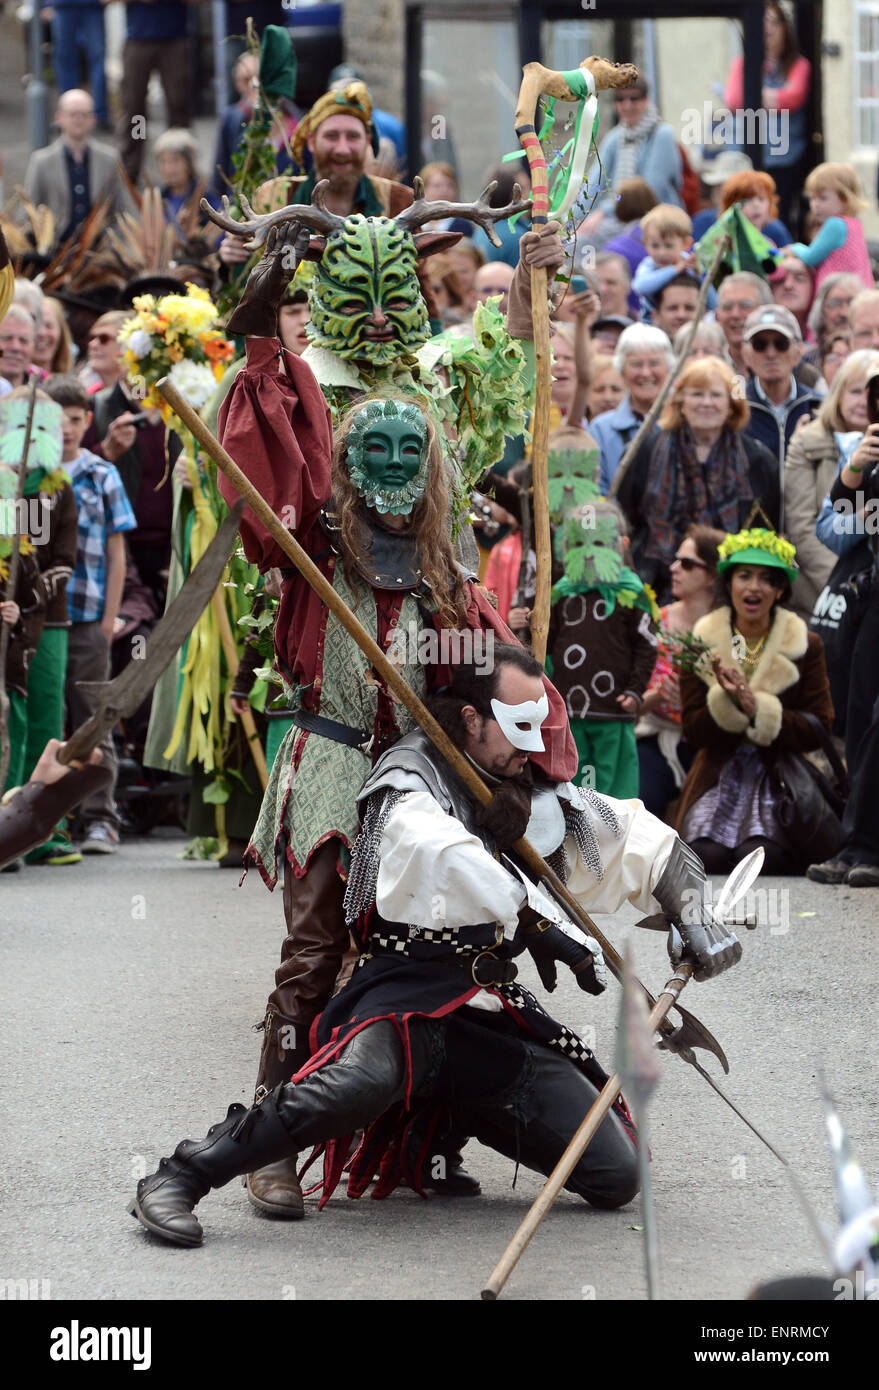 The Green Man festival at Clun in Shropshire May Day 2015 pagan festival britain uk - Stock Image